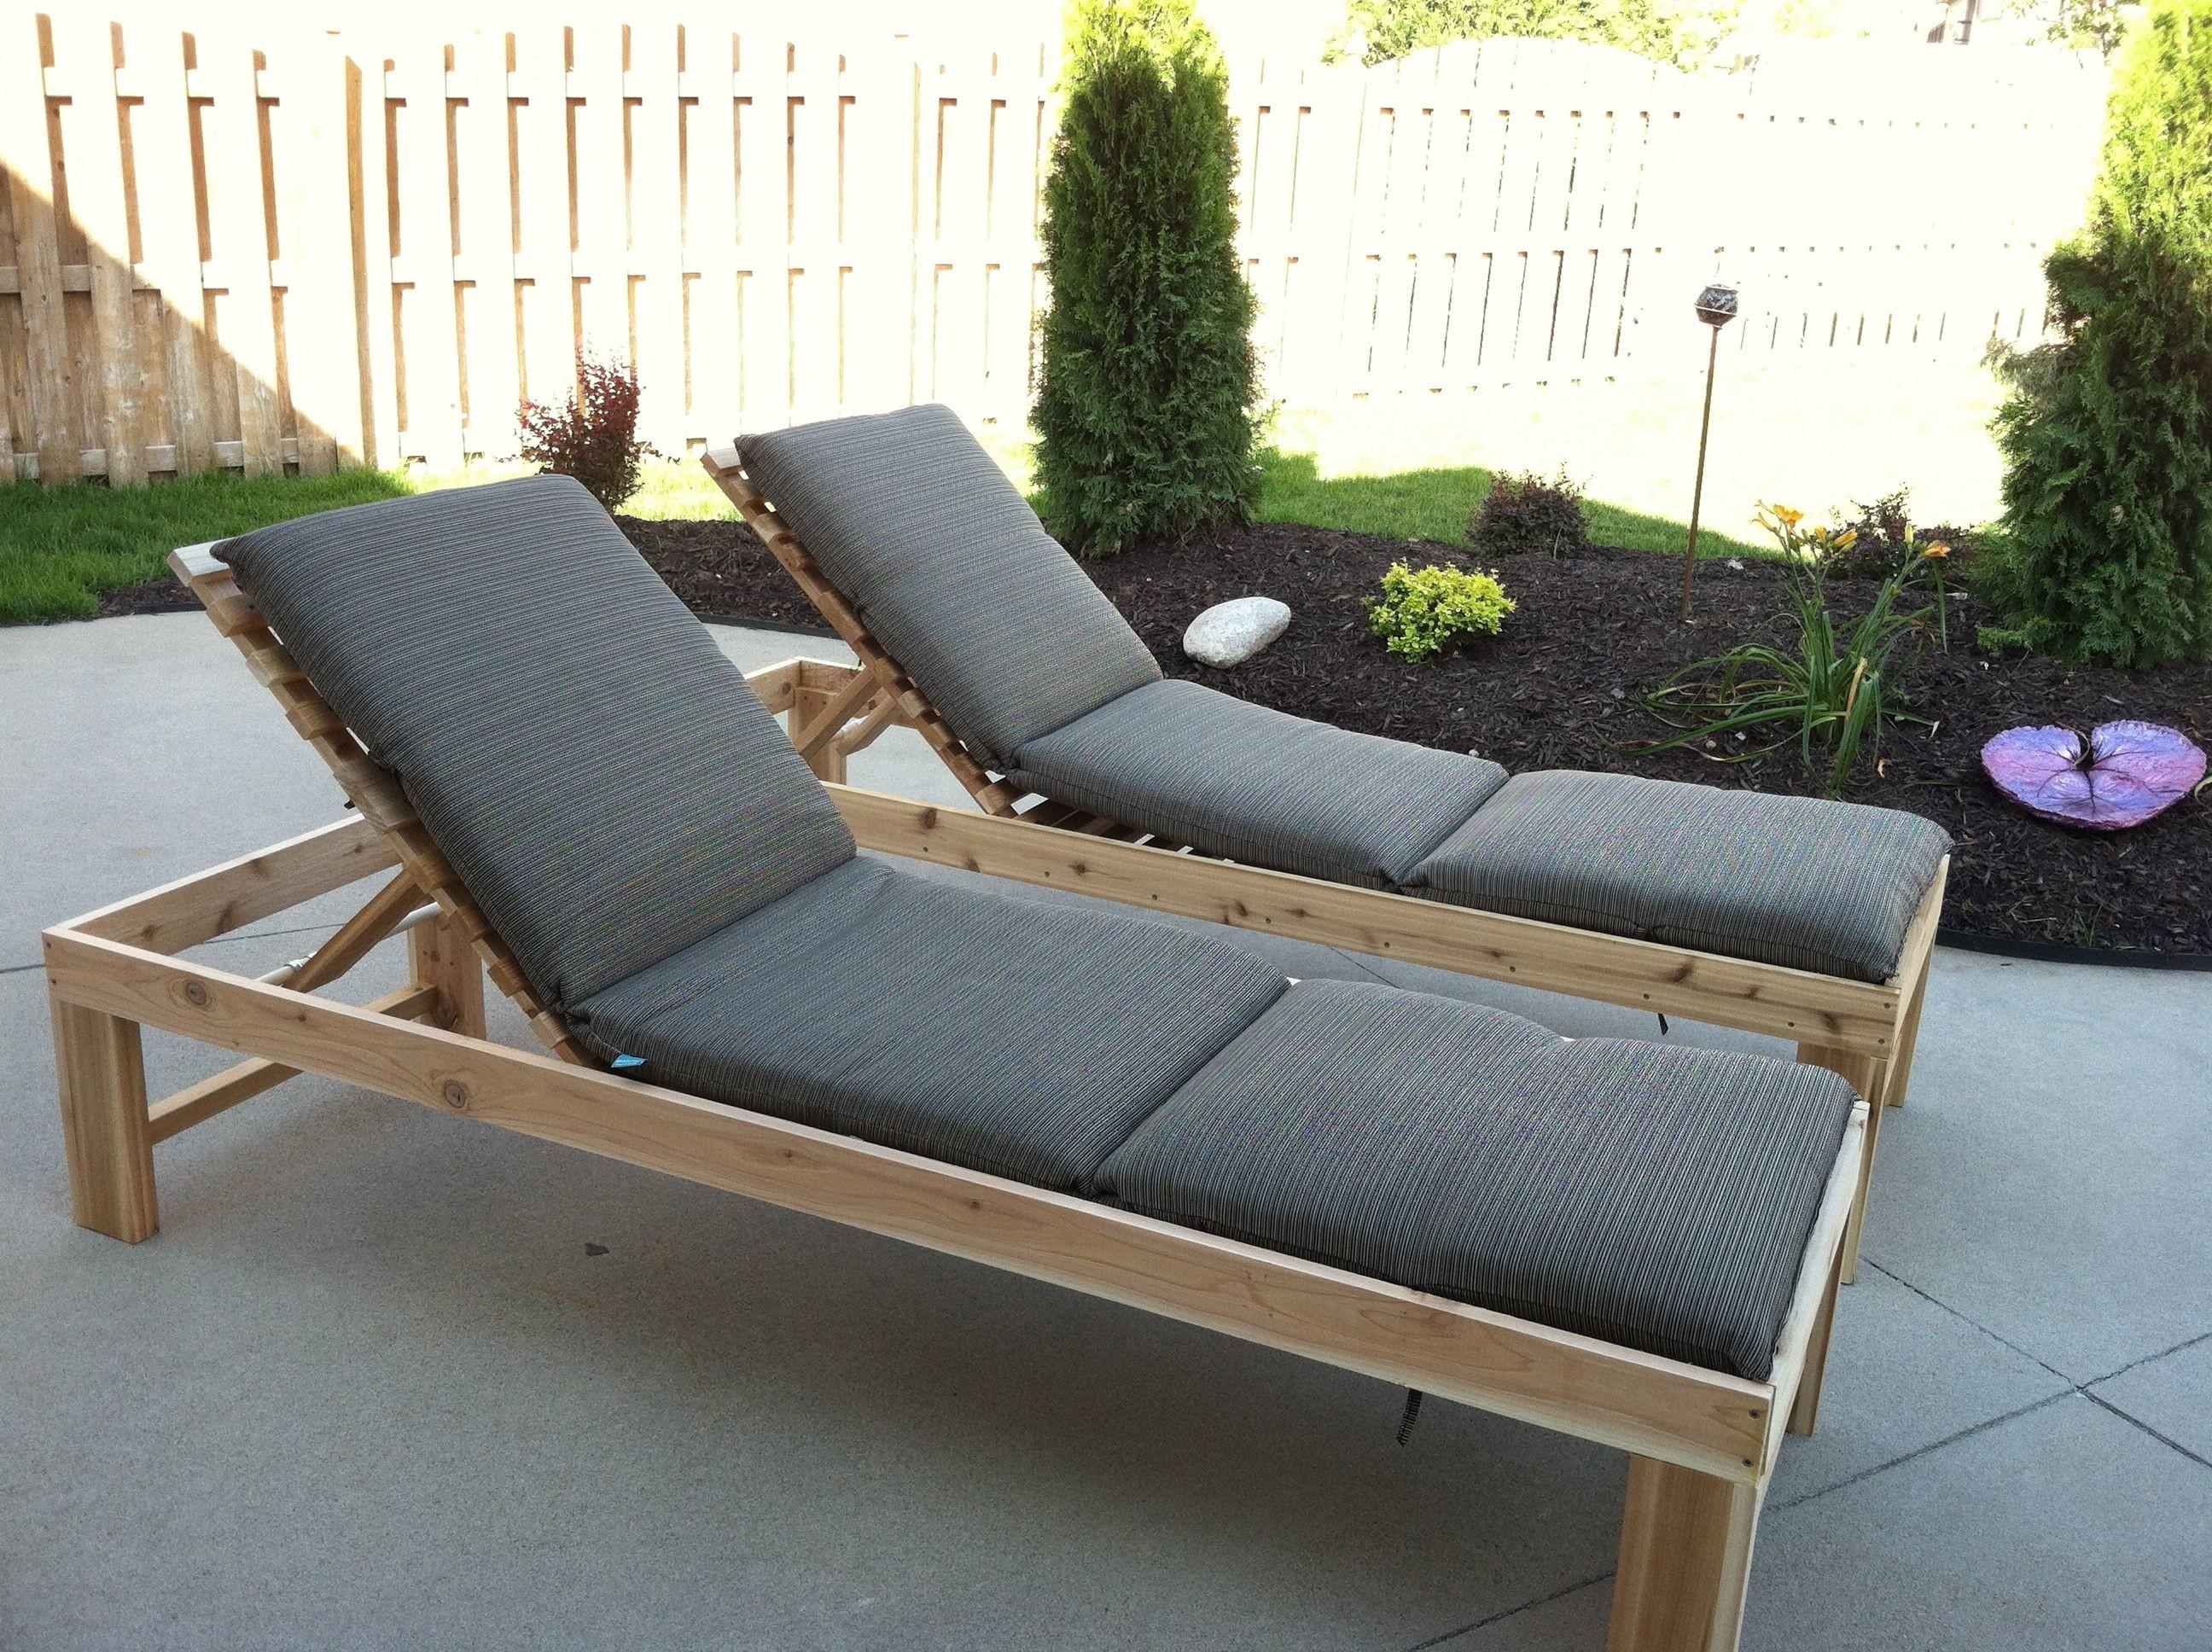 Outdoor Chic Chaise Lounge Furniture